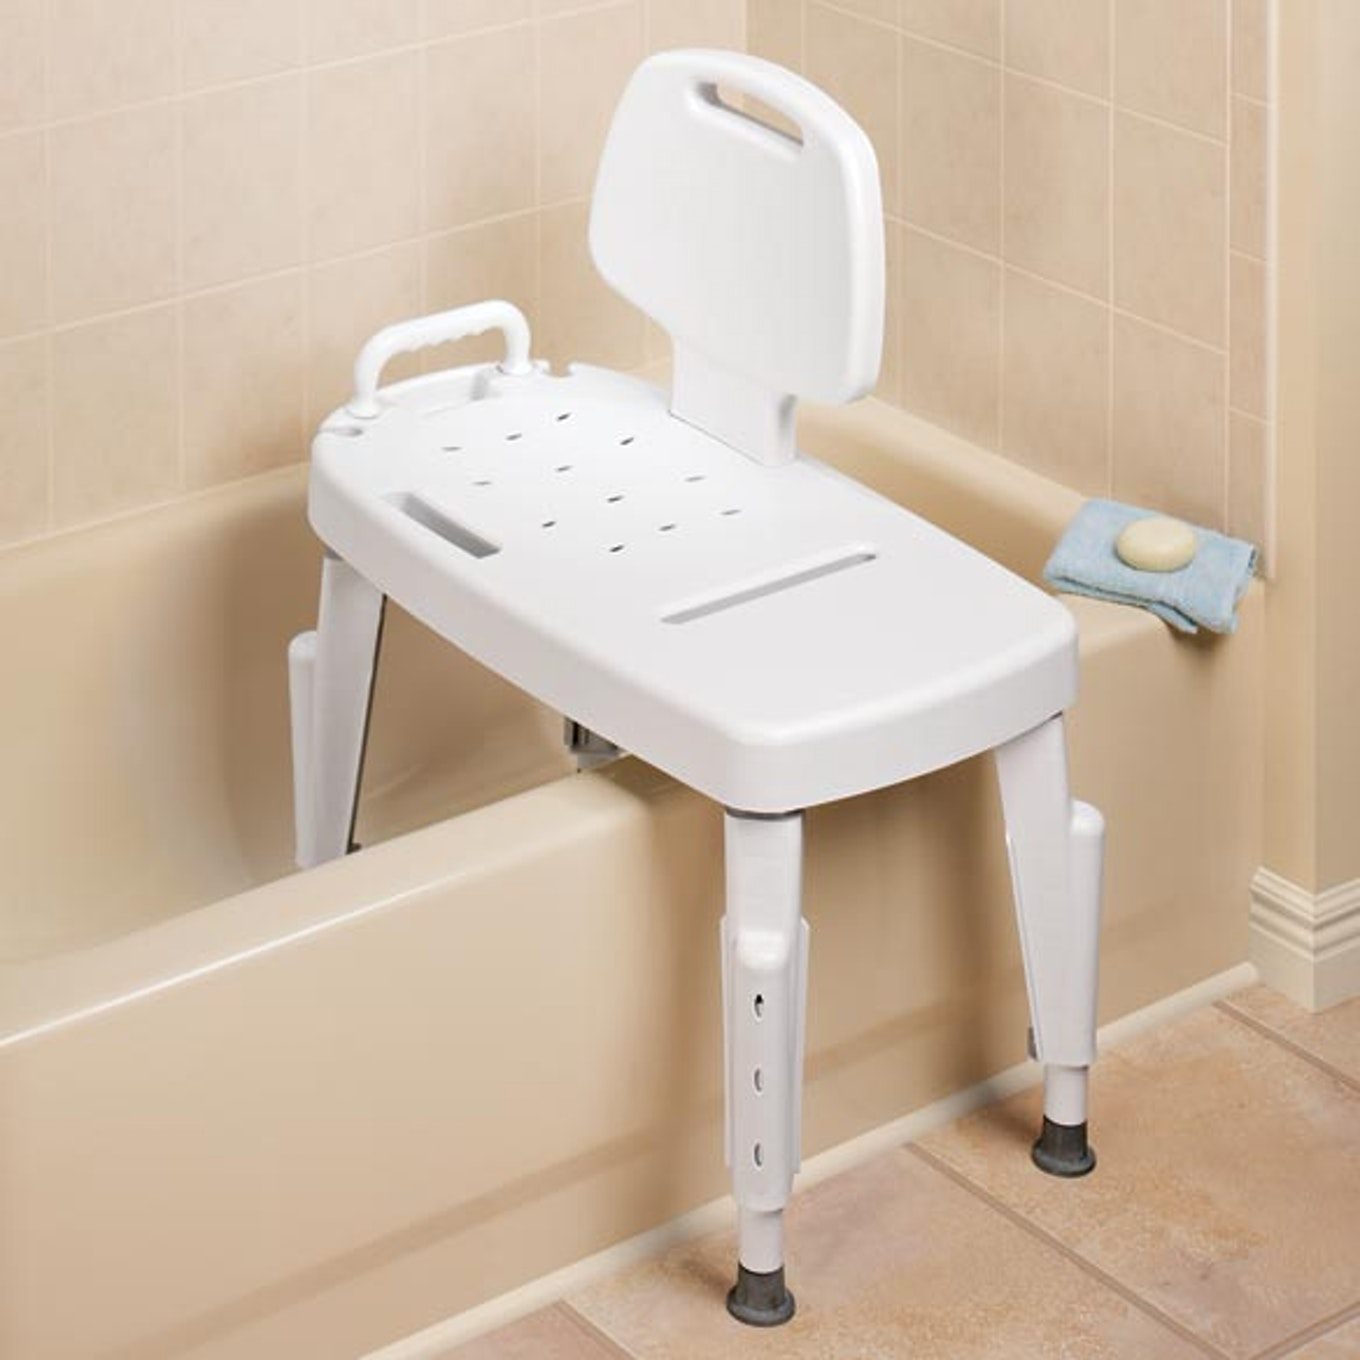 Transfer Tub Bench | Shower Sliding Transfer Bench | Adjustable Transfer Bench